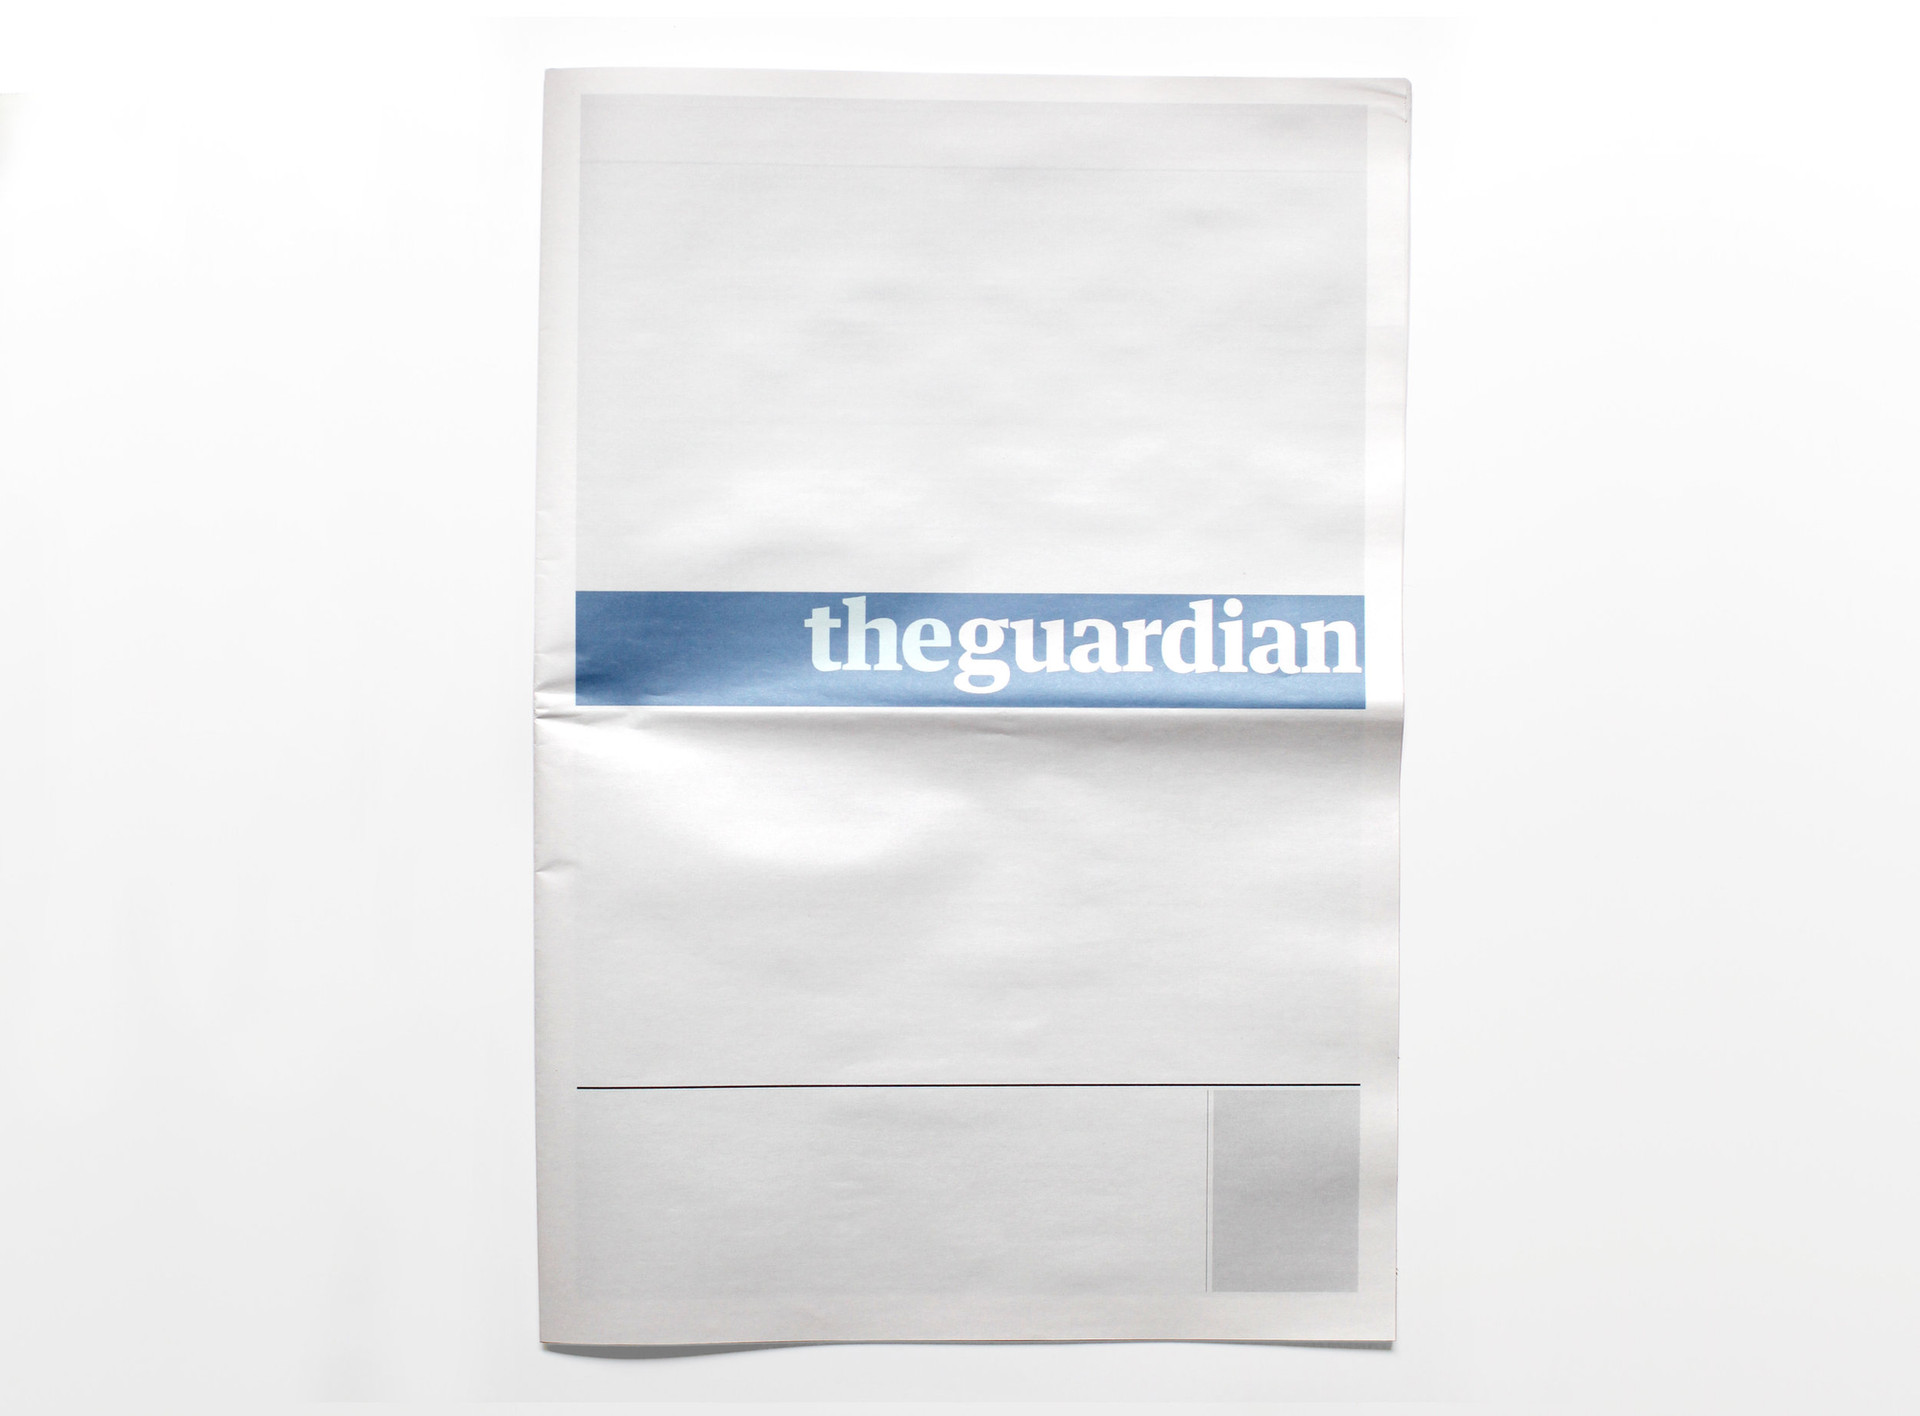 NOTHING IN THE GUARDIAN: Newspapers from around the world with nothing in them.